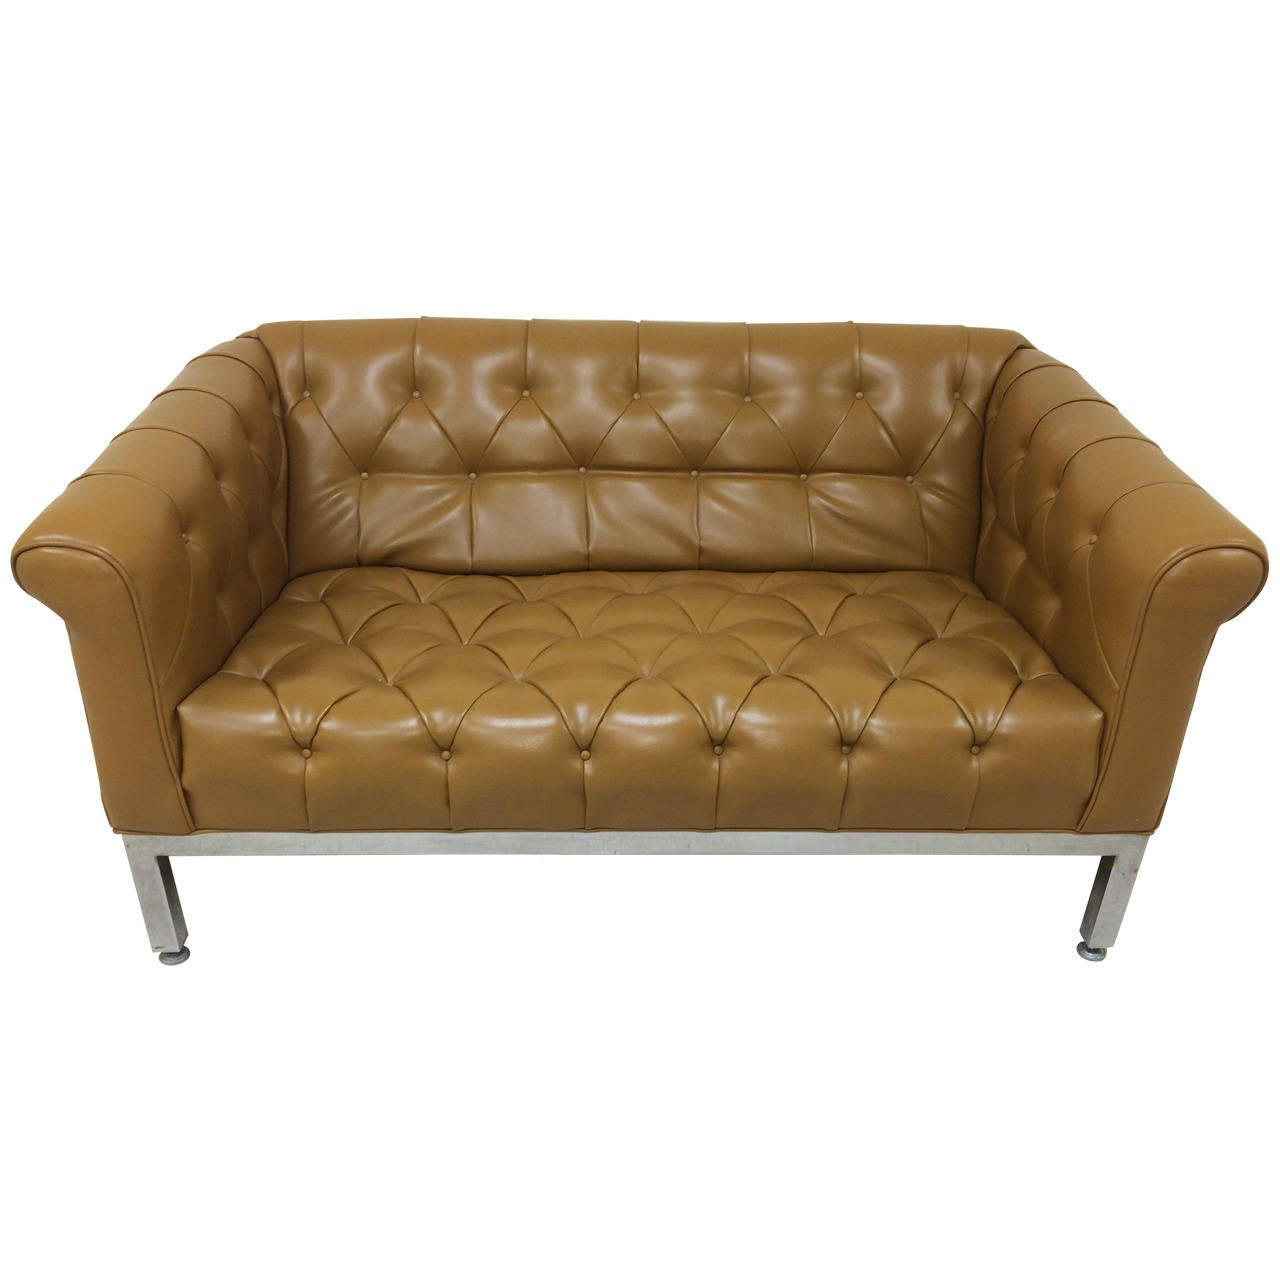 Signed Milo Baughman for Thayer Coggin Tufted Sofa For Sale